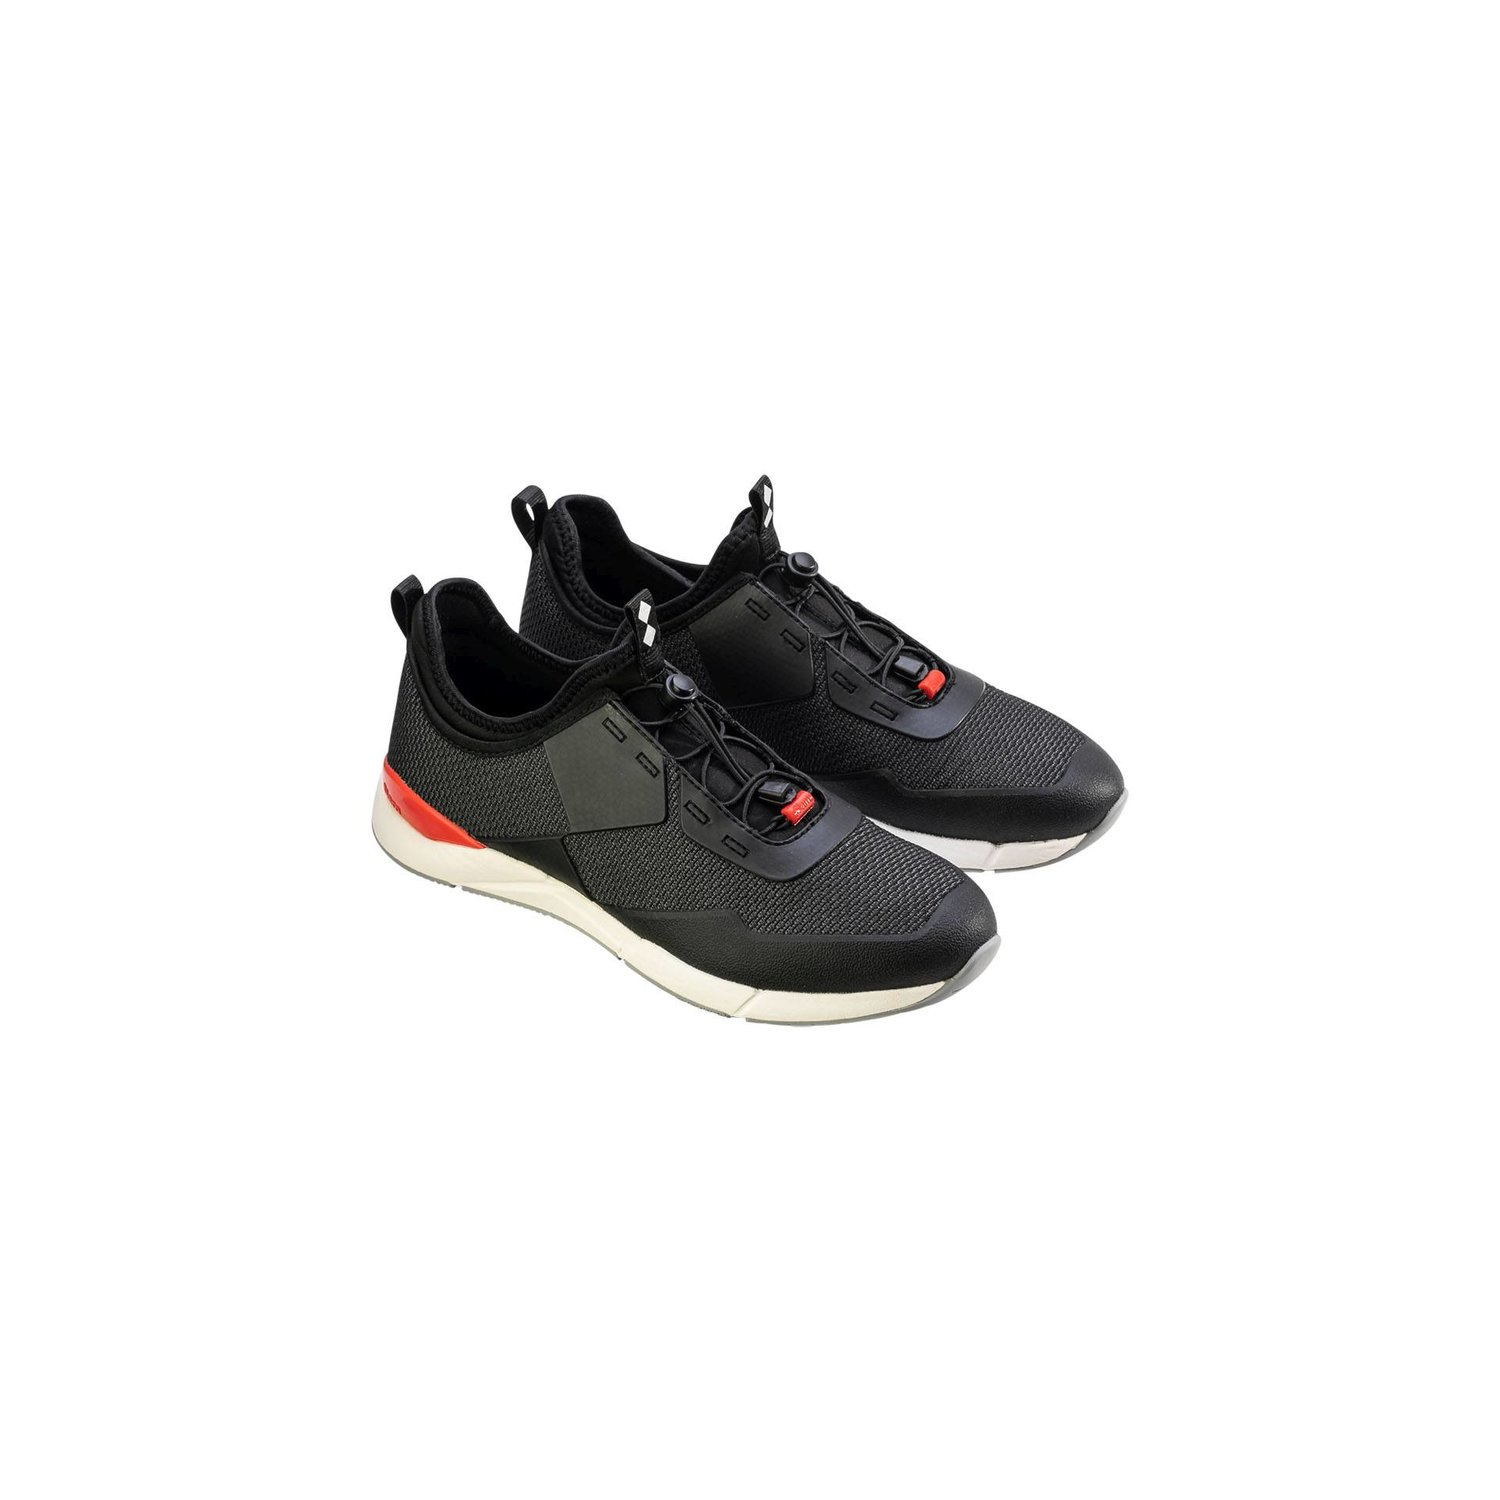 Win-D Technical Shoe - Black / White